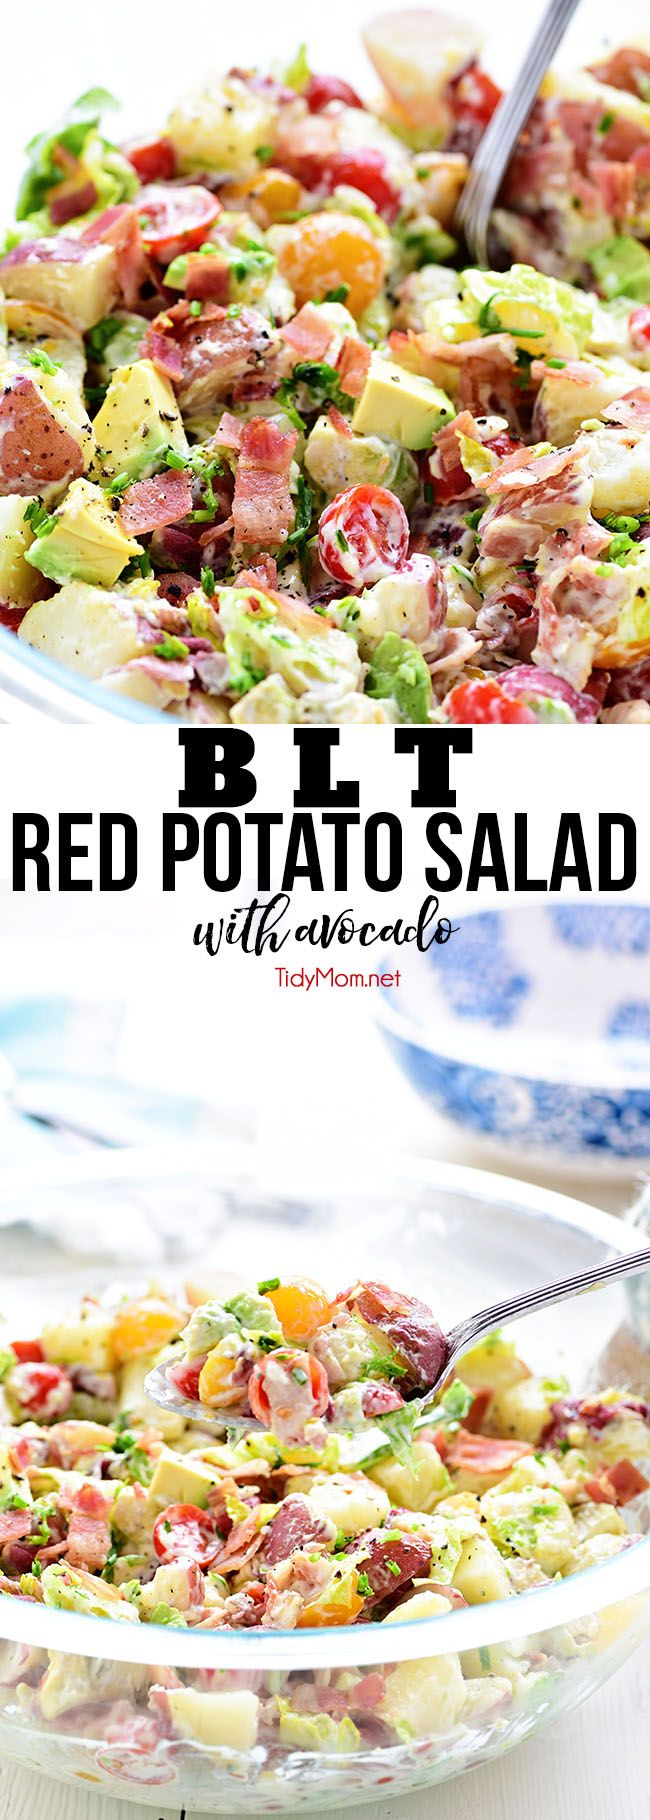 This easy BLT Red Potato Salad has an avocado ranch dressing along with bacon, lettuce and tomato! It's a simple crowd-pleasing side dish!